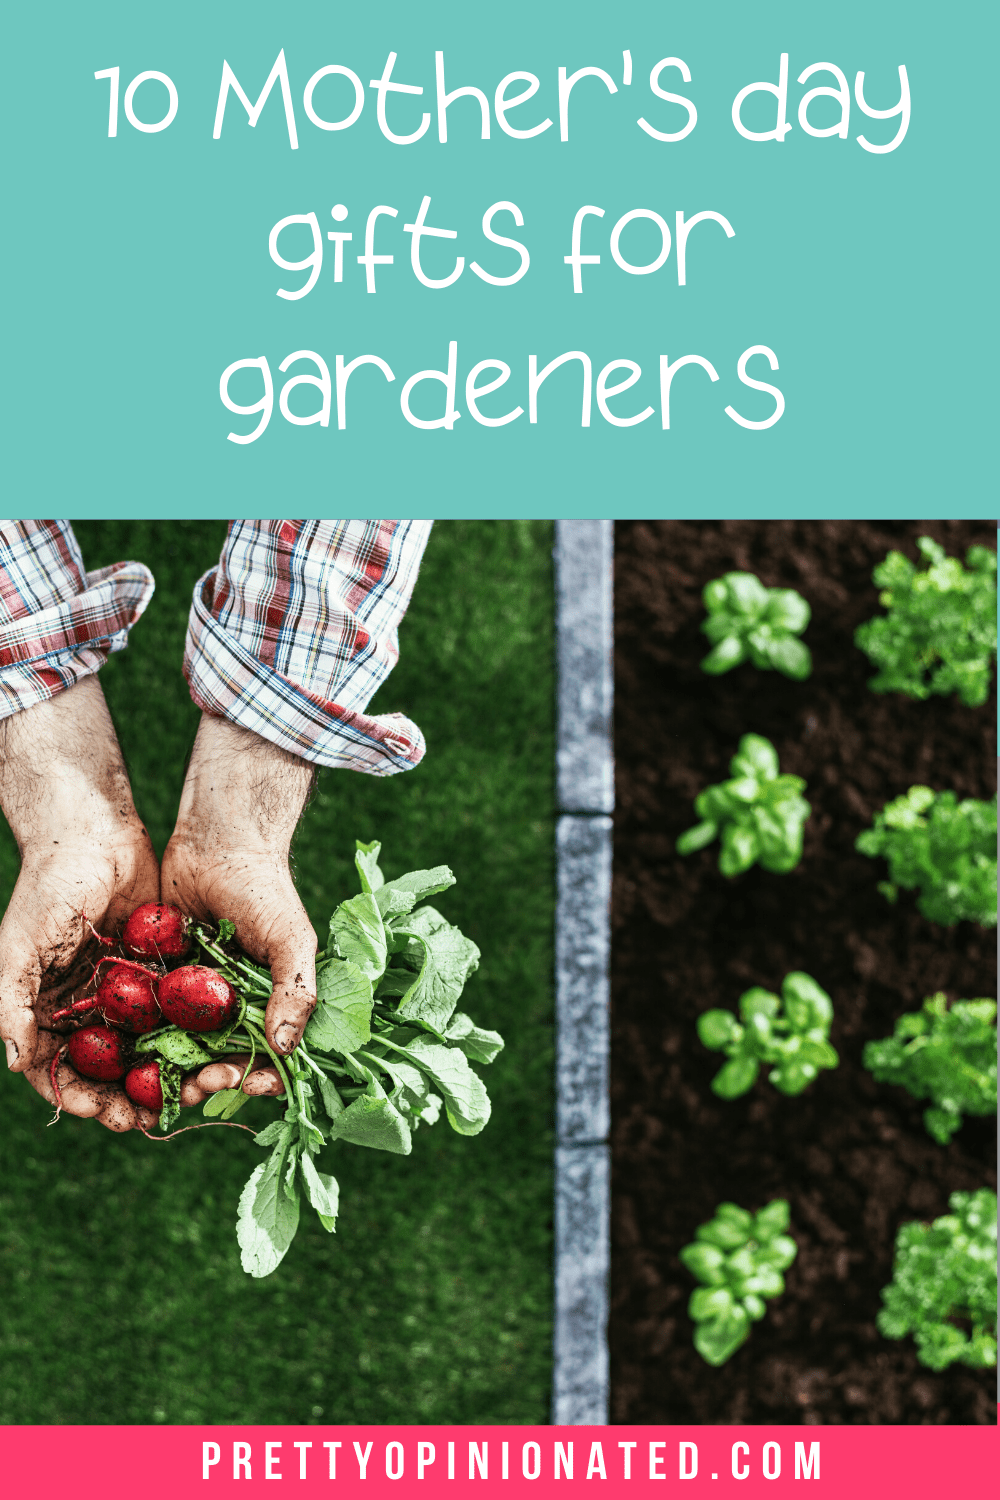 When you're buying for someone who loves spending time in the garden, there's a huge selection of great gift ideas out there. These 10 Great Gift Ideas for Mothers Who Love Gardening will help you find the perfect present!